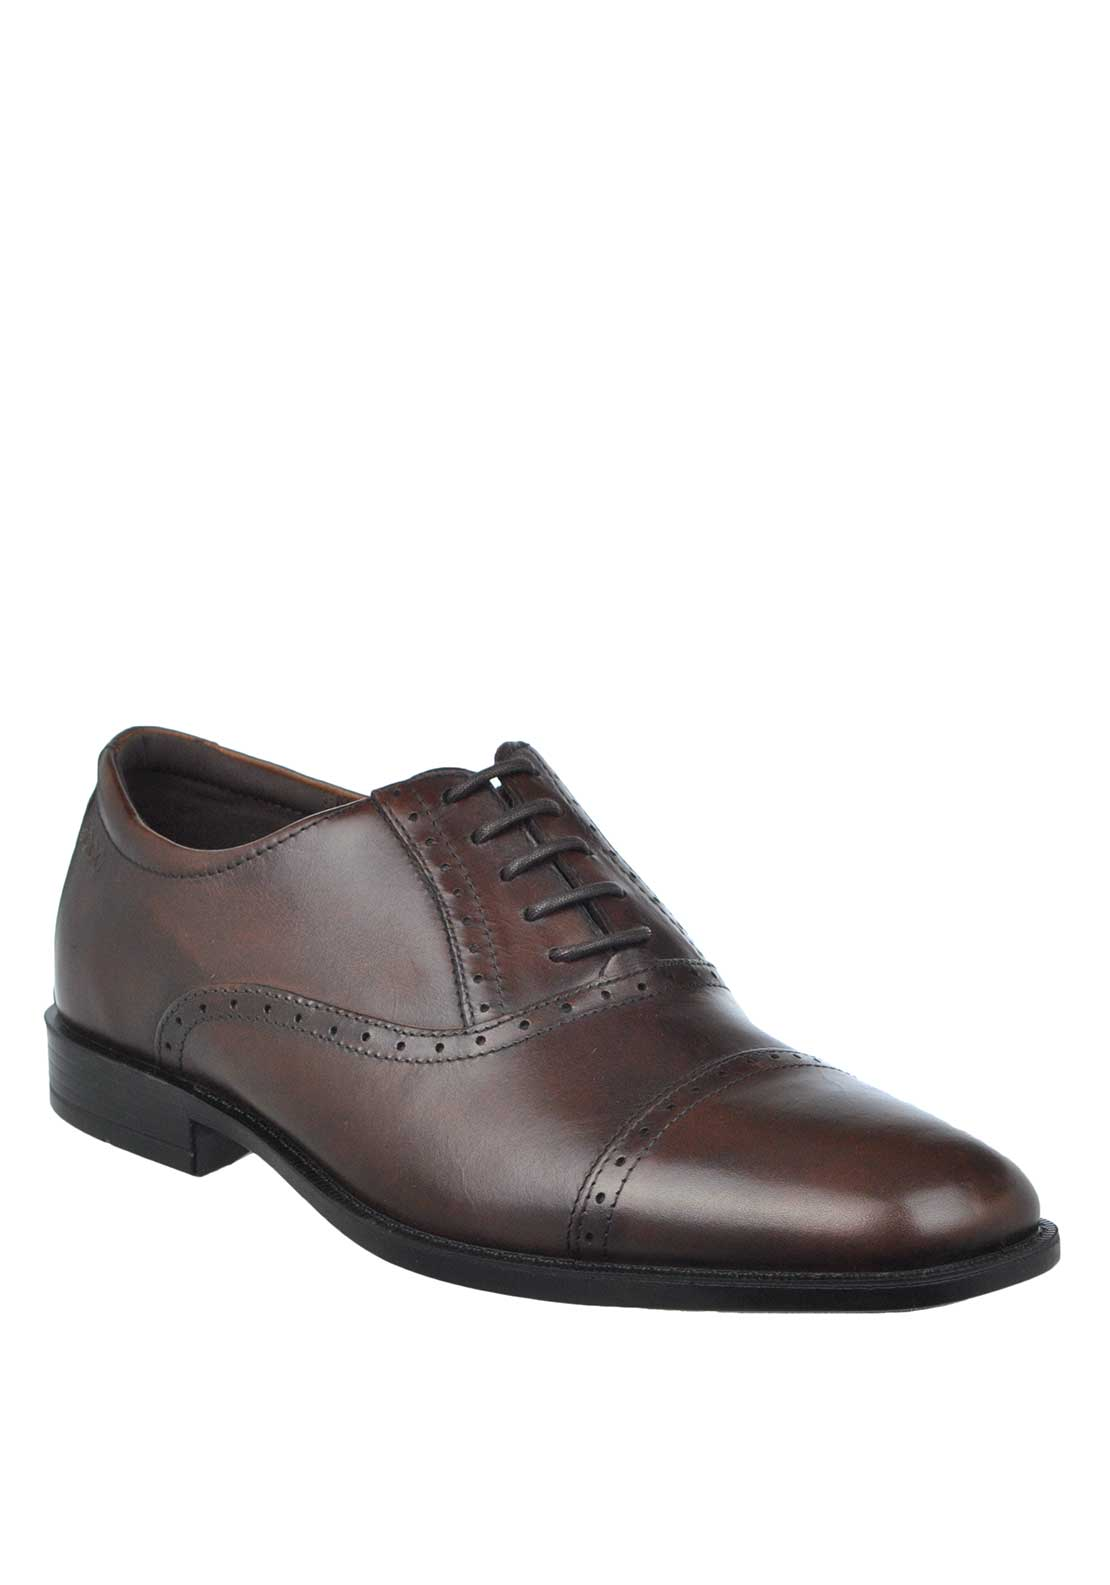 ECCO Mens Edinburgh Leather Brogue Lace Up Shoe, Mink Brown